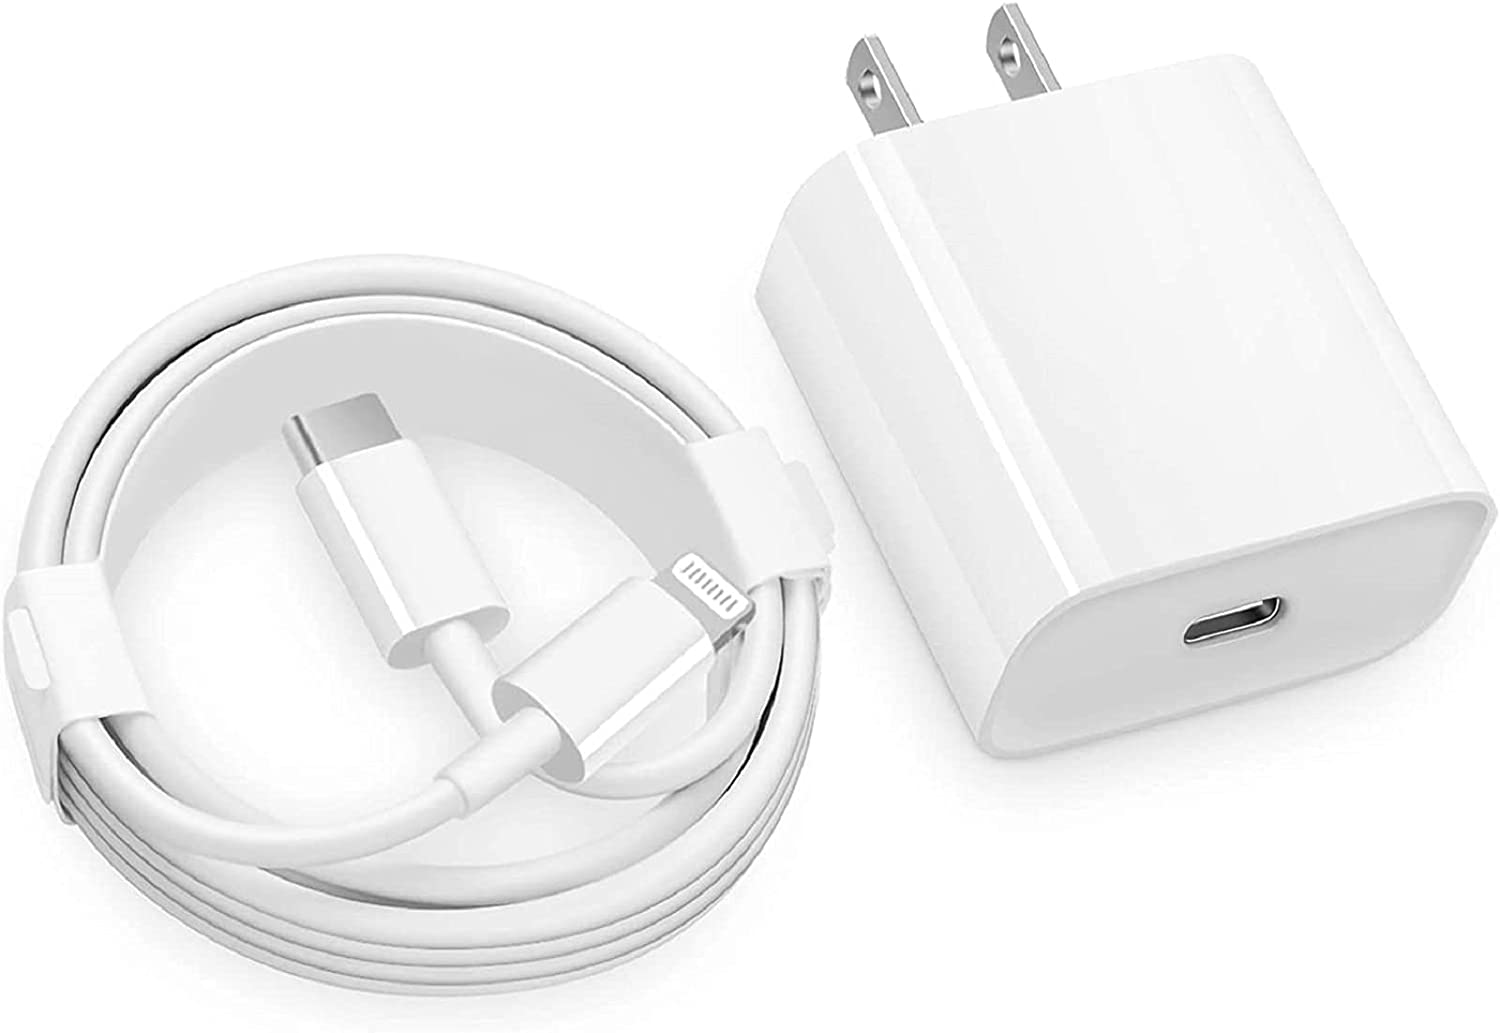 iPhone Fast Charger, USB C Fast Charger, 20W PD USB C Wall Charger with 6FT Type C to Lightning Cable Compatible with iPhone 12/12 Mini/12Pro/12 Pro Max/11/11Pro/11 Pro Max/XS/XS Max/XR/X/iPad Pro